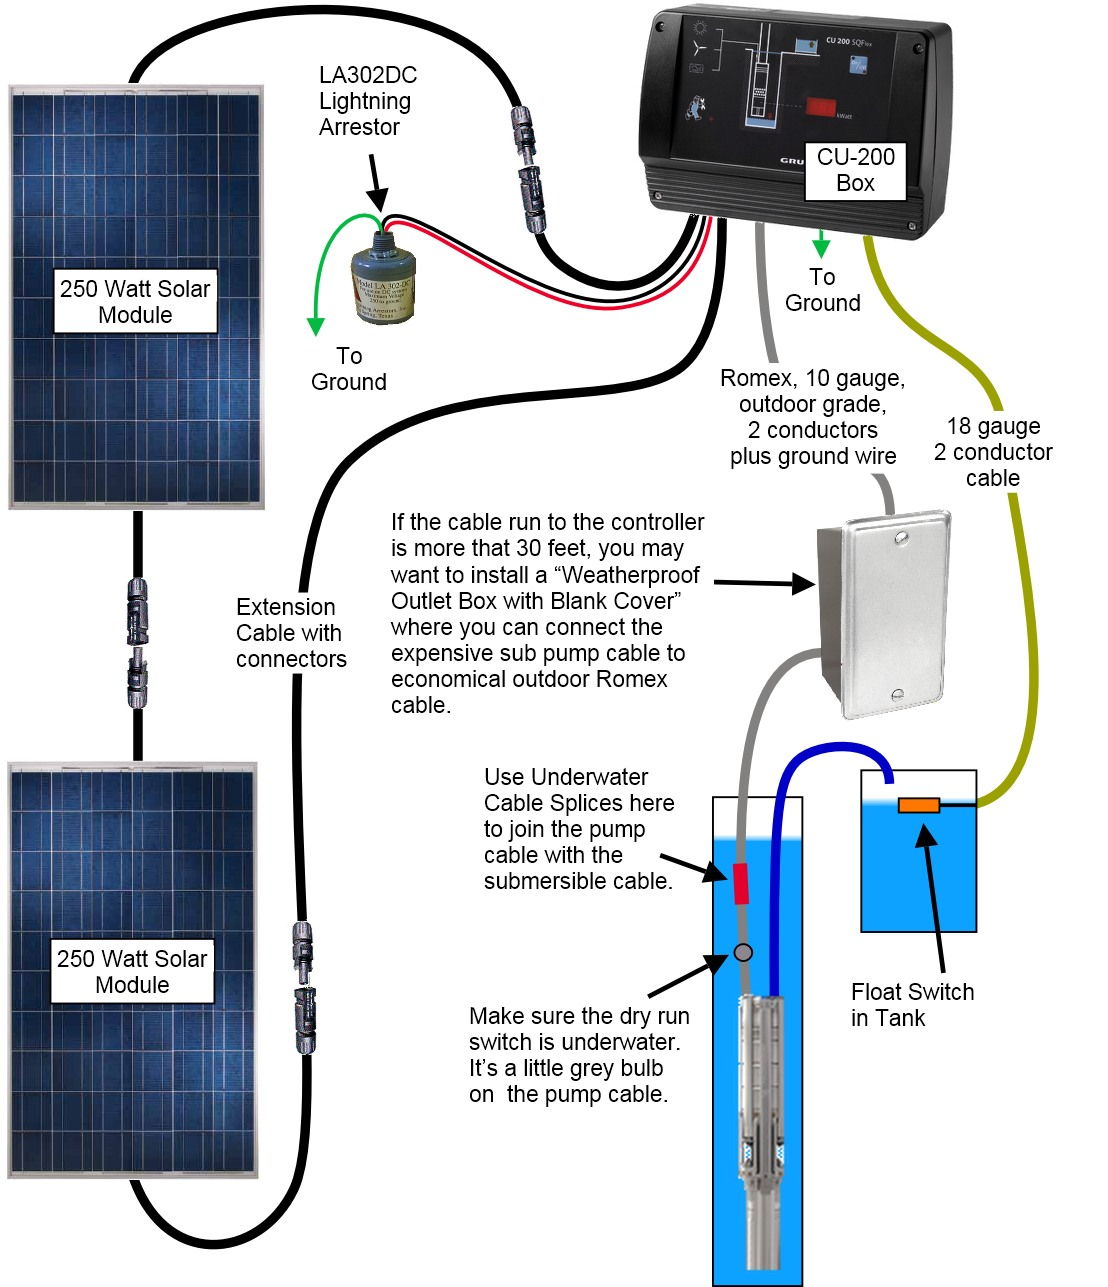 Solar Power Wiring Diagram Pdf 30 Images Fundamentals Of House Grundfos Sqflex Water Pump